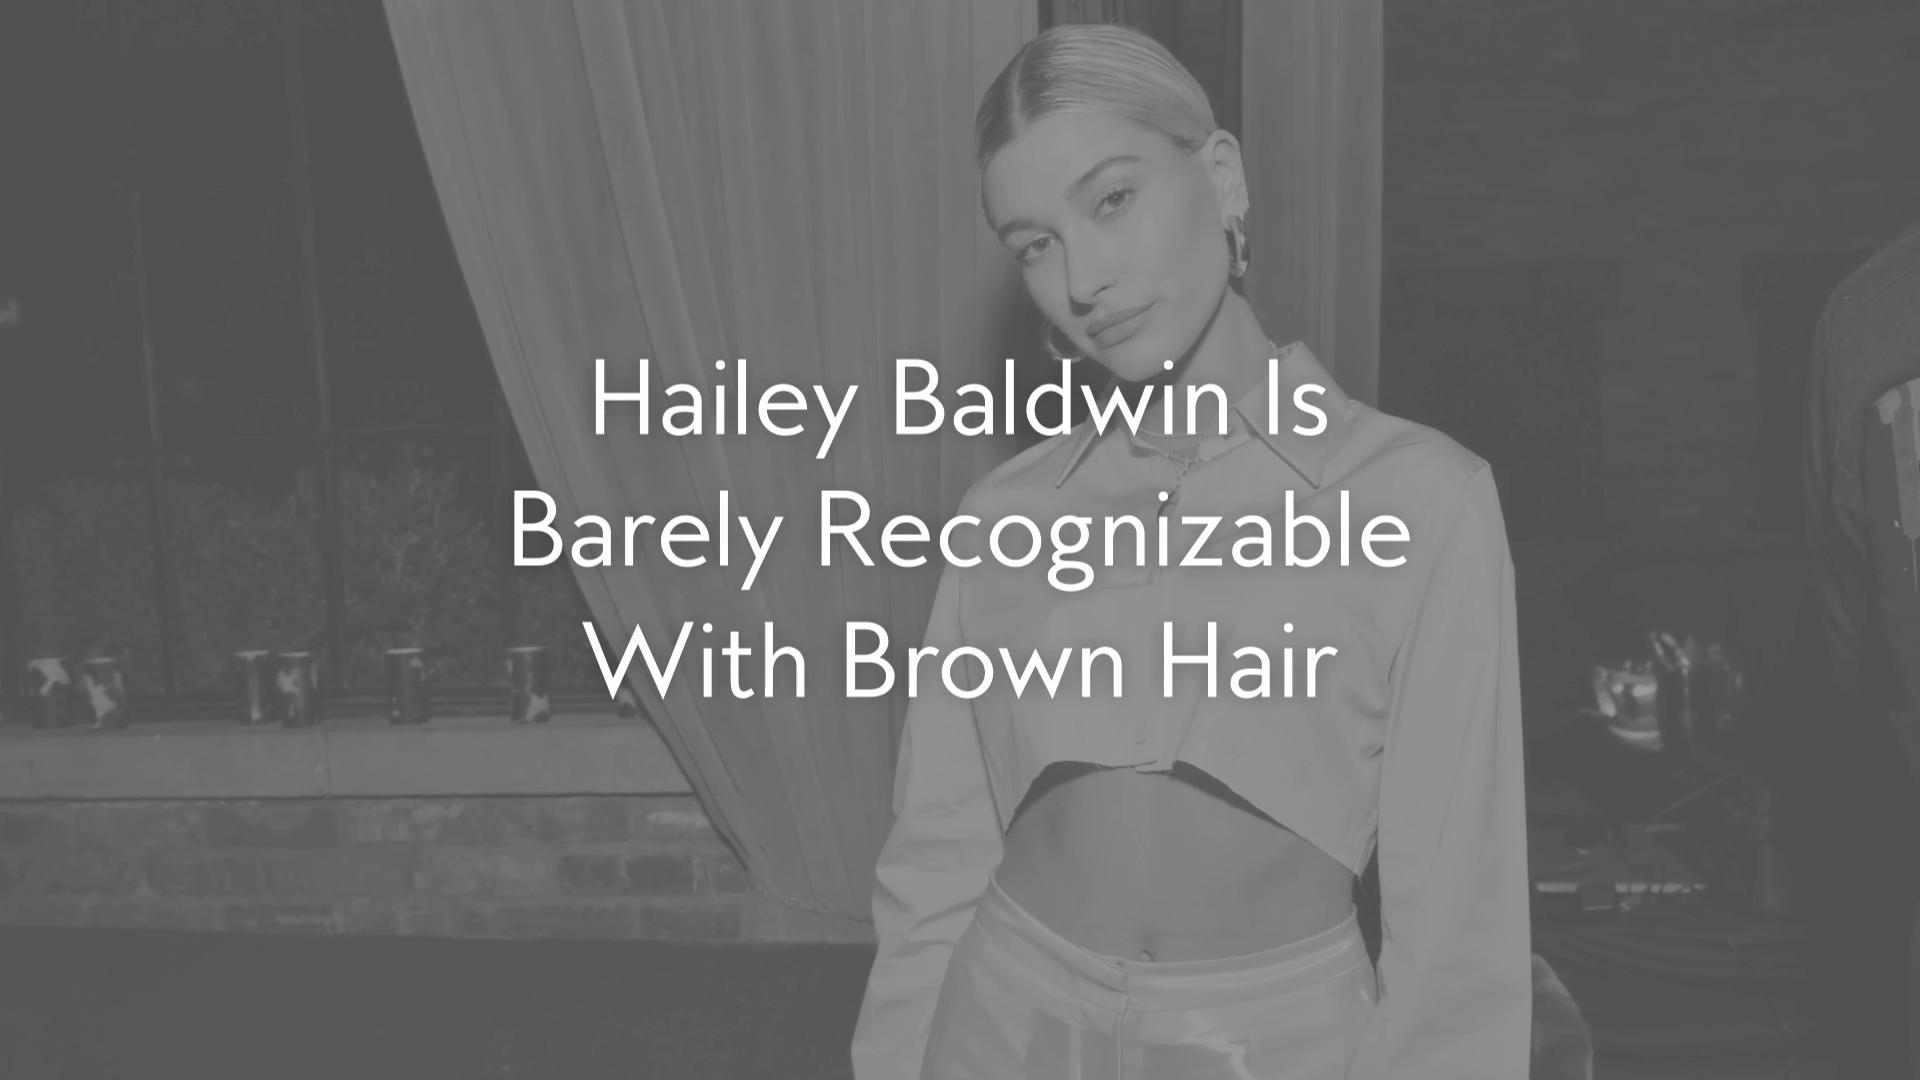 Hailey Baldwin Is Barely Recognizable With Brown Hair